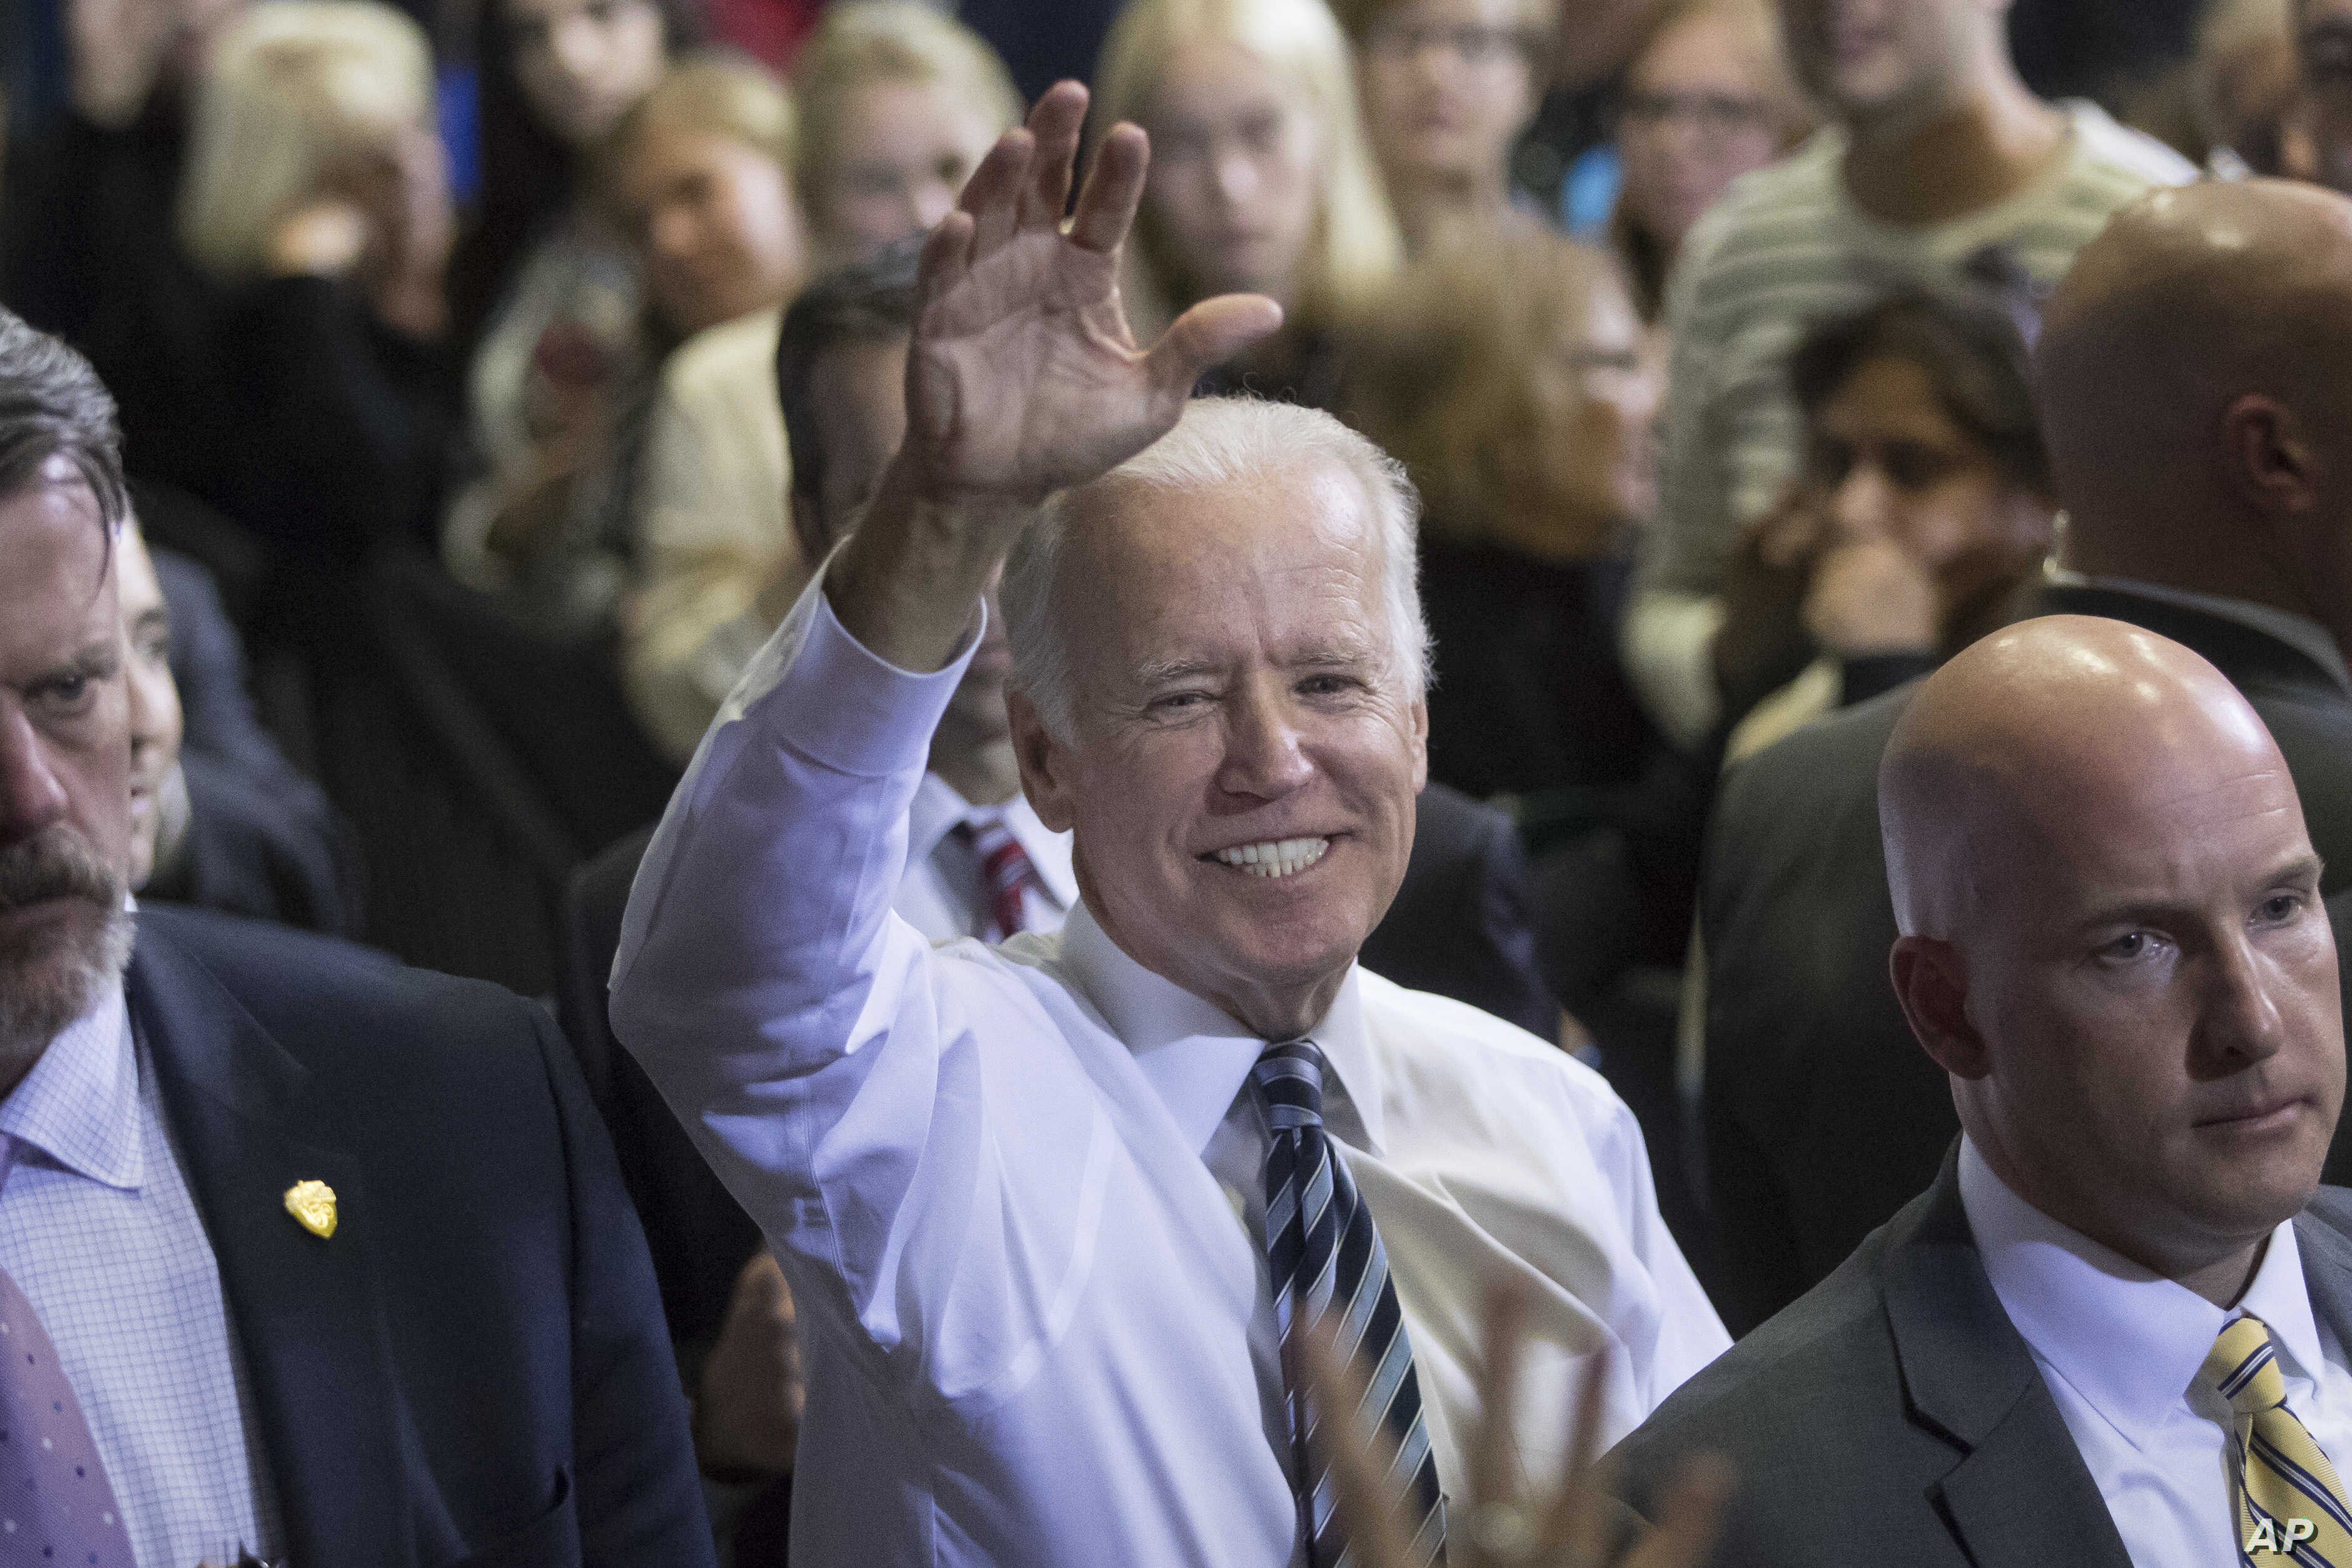 Vice President Joe Biden campaigns for Democratic presidential candidate Hillary Clinton at the Sinclair Community College Automotive Technology Building, Monday, Oct. 24, 2016, in Dayton, Ohio